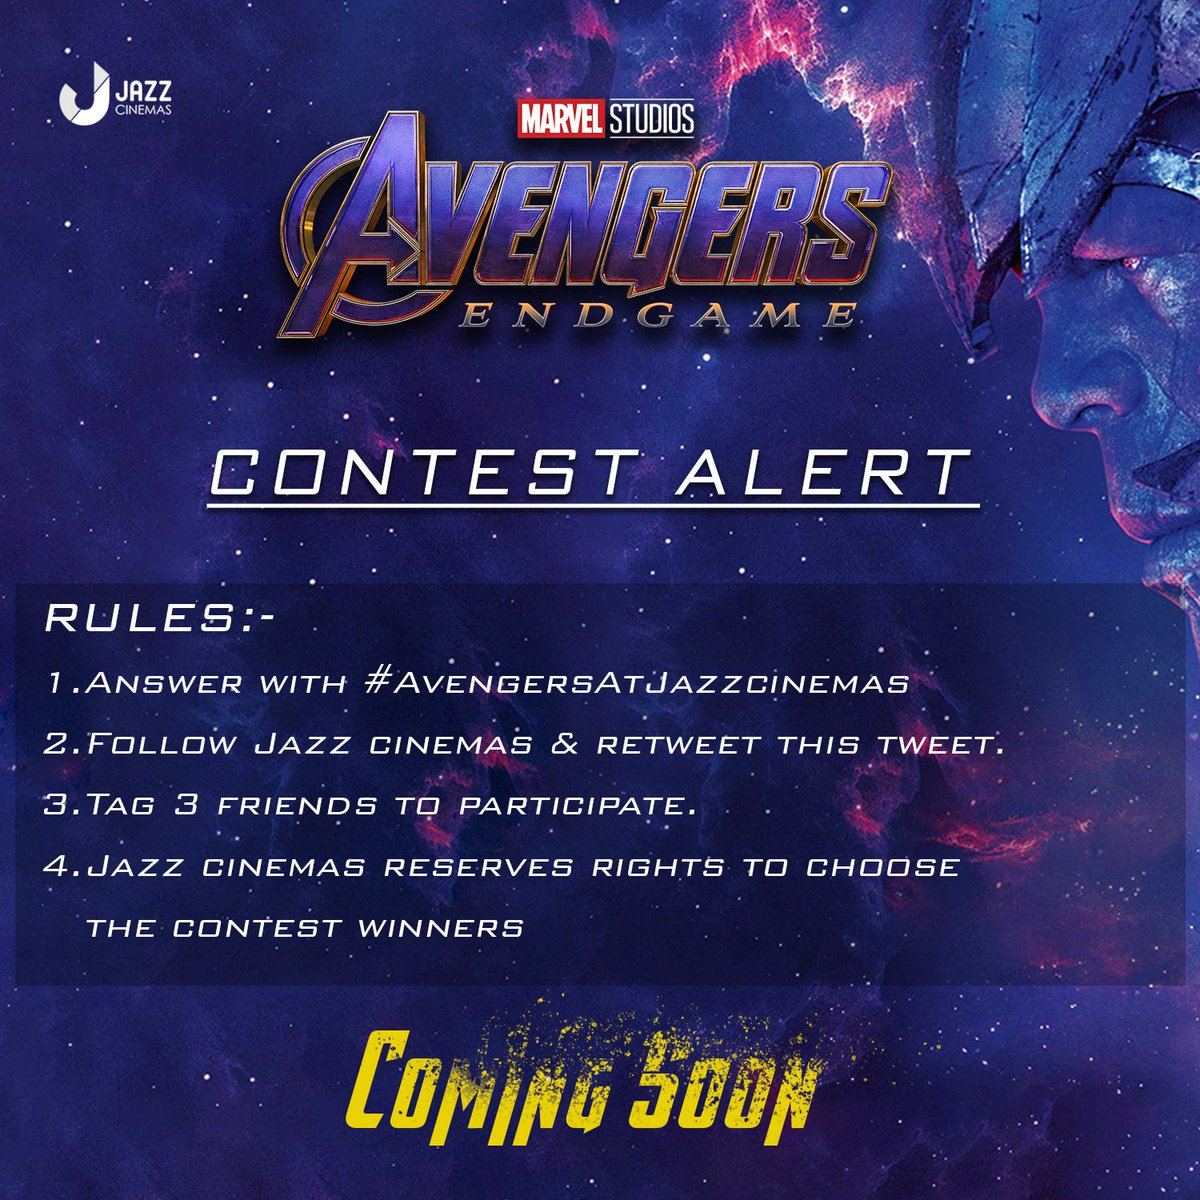 Buckle up #Marvelfans #AvengersAtJazzcinemas contest coming soon  Win tickets to the red carpet screening of Avengers-end game  Retweet,tag friends and reply using #AvengersAtJazzcinemas  if you're ready for an exciting challenge.   #jazzcinemas #jazzcinemascontest #contestalert